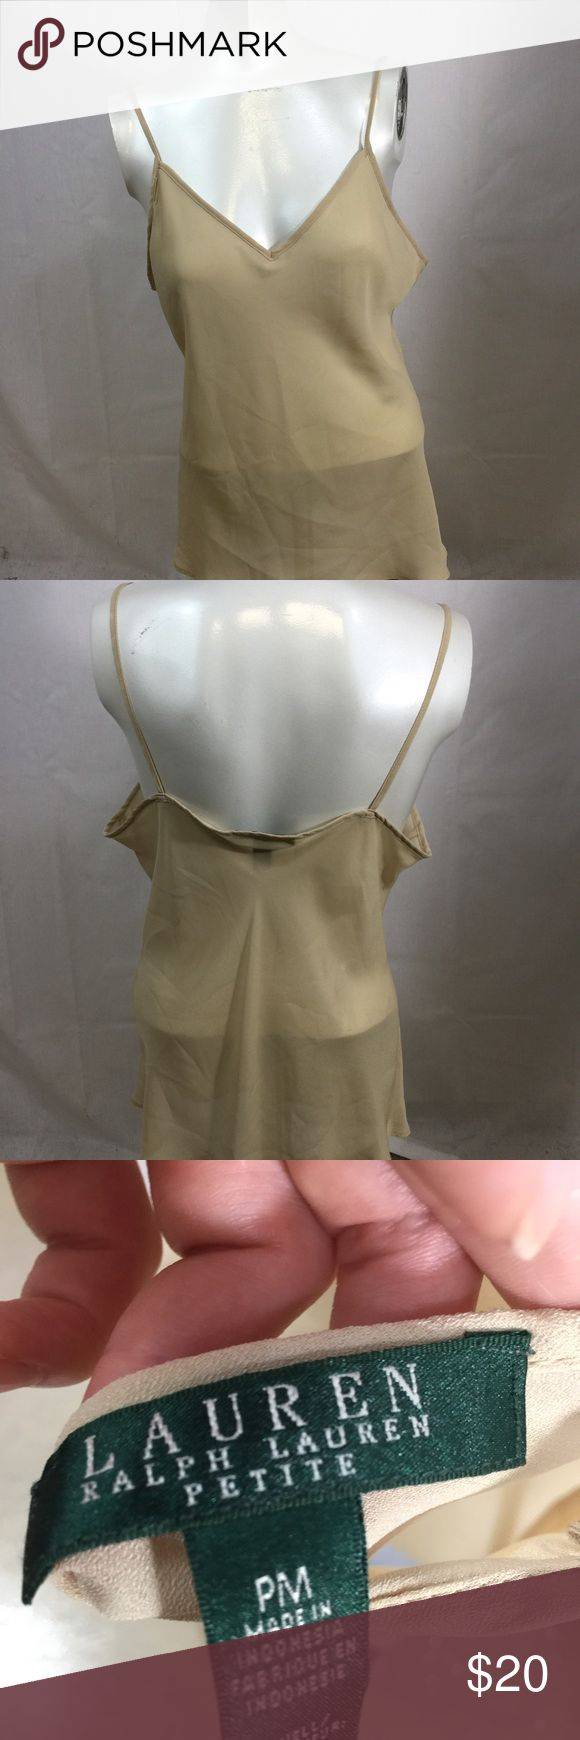 Ralph Lauren sheer beige cami This cami can be worn by itself or with a cute bandeau. It's sheer and beige. Box f Lauren Ralph Lauren Tops Camisoles